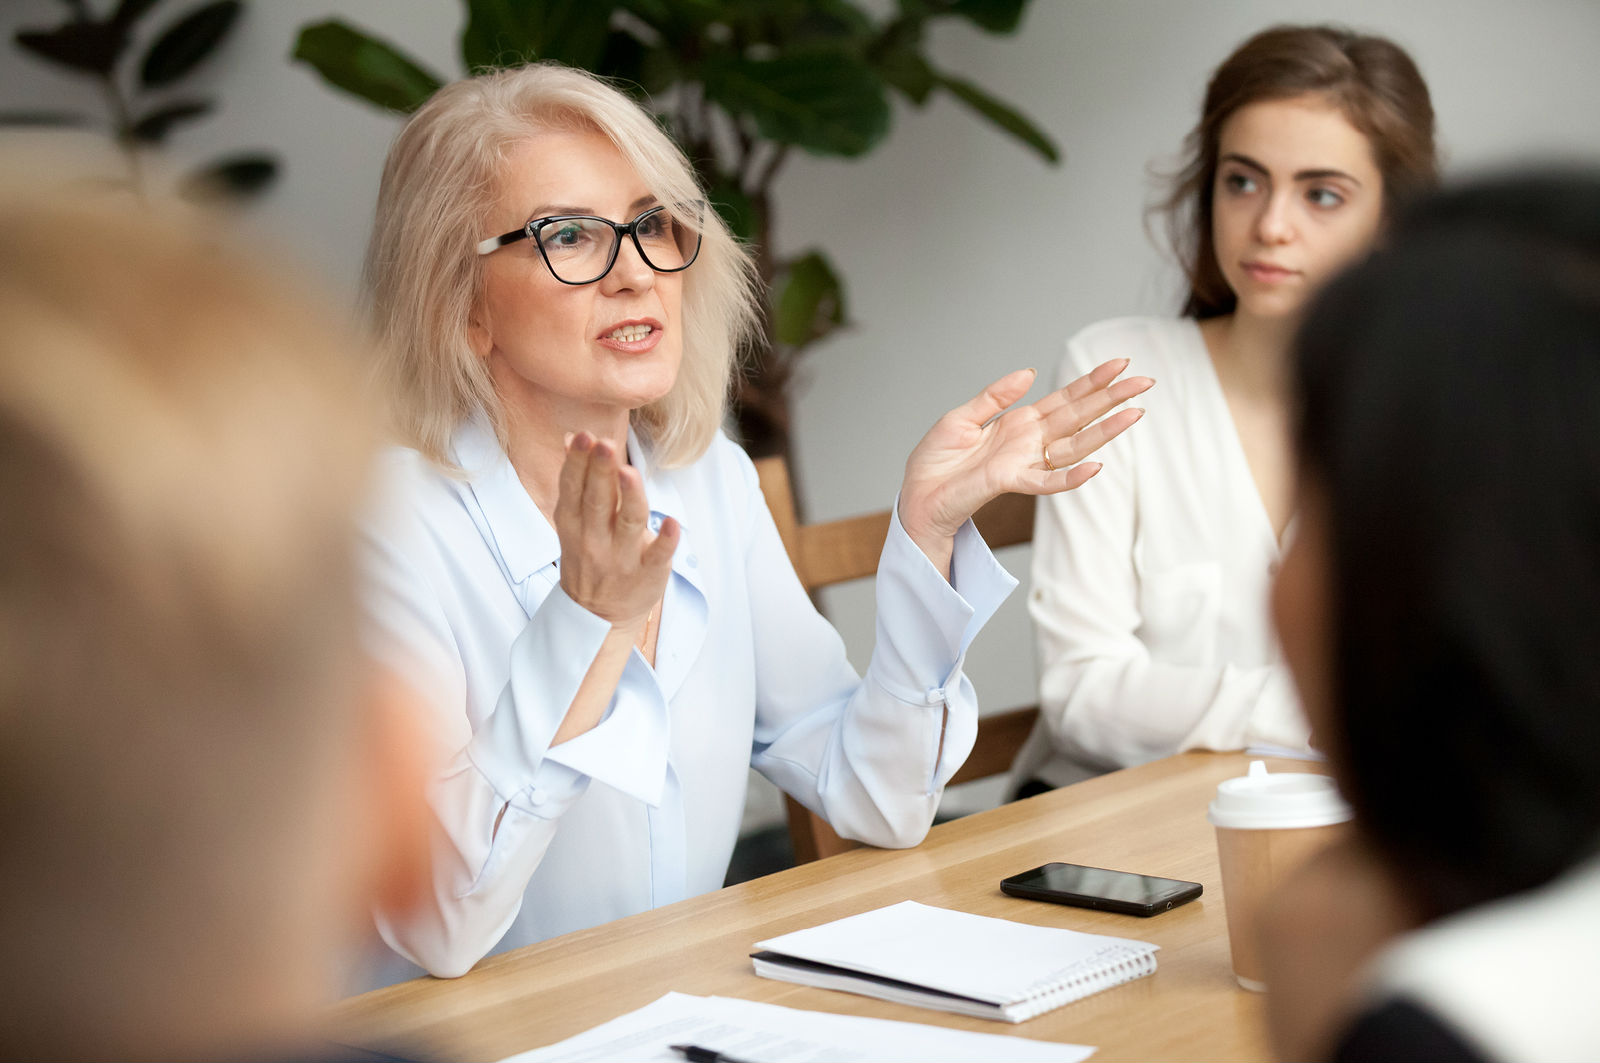 Five Valuable Skills & Lessons That Come With Mentorship